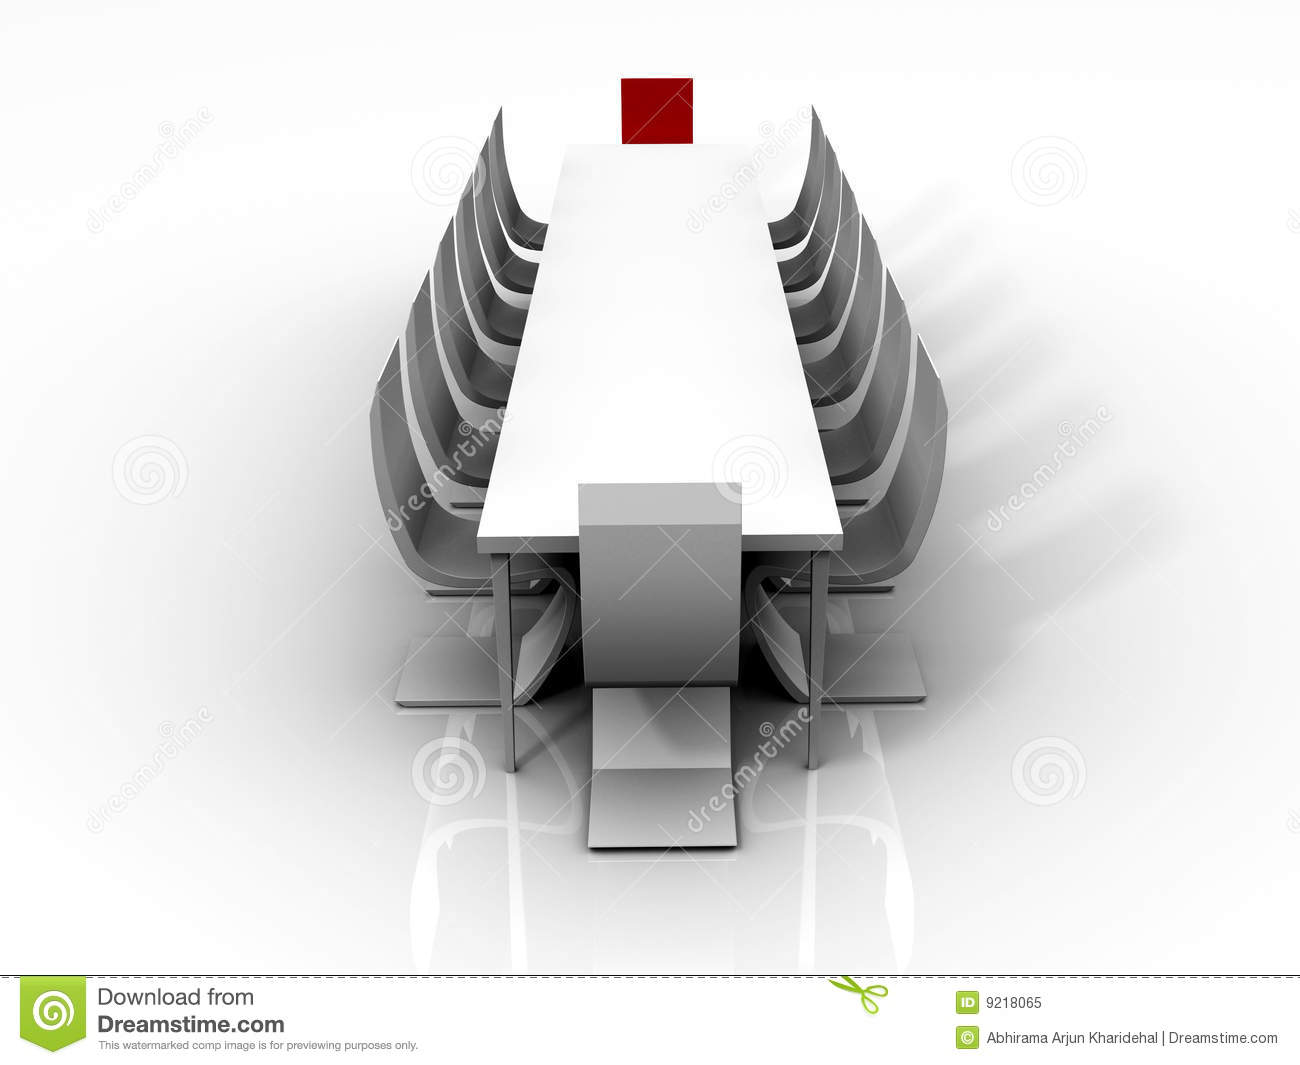 3D rendered image of a conference table with a red chair for the